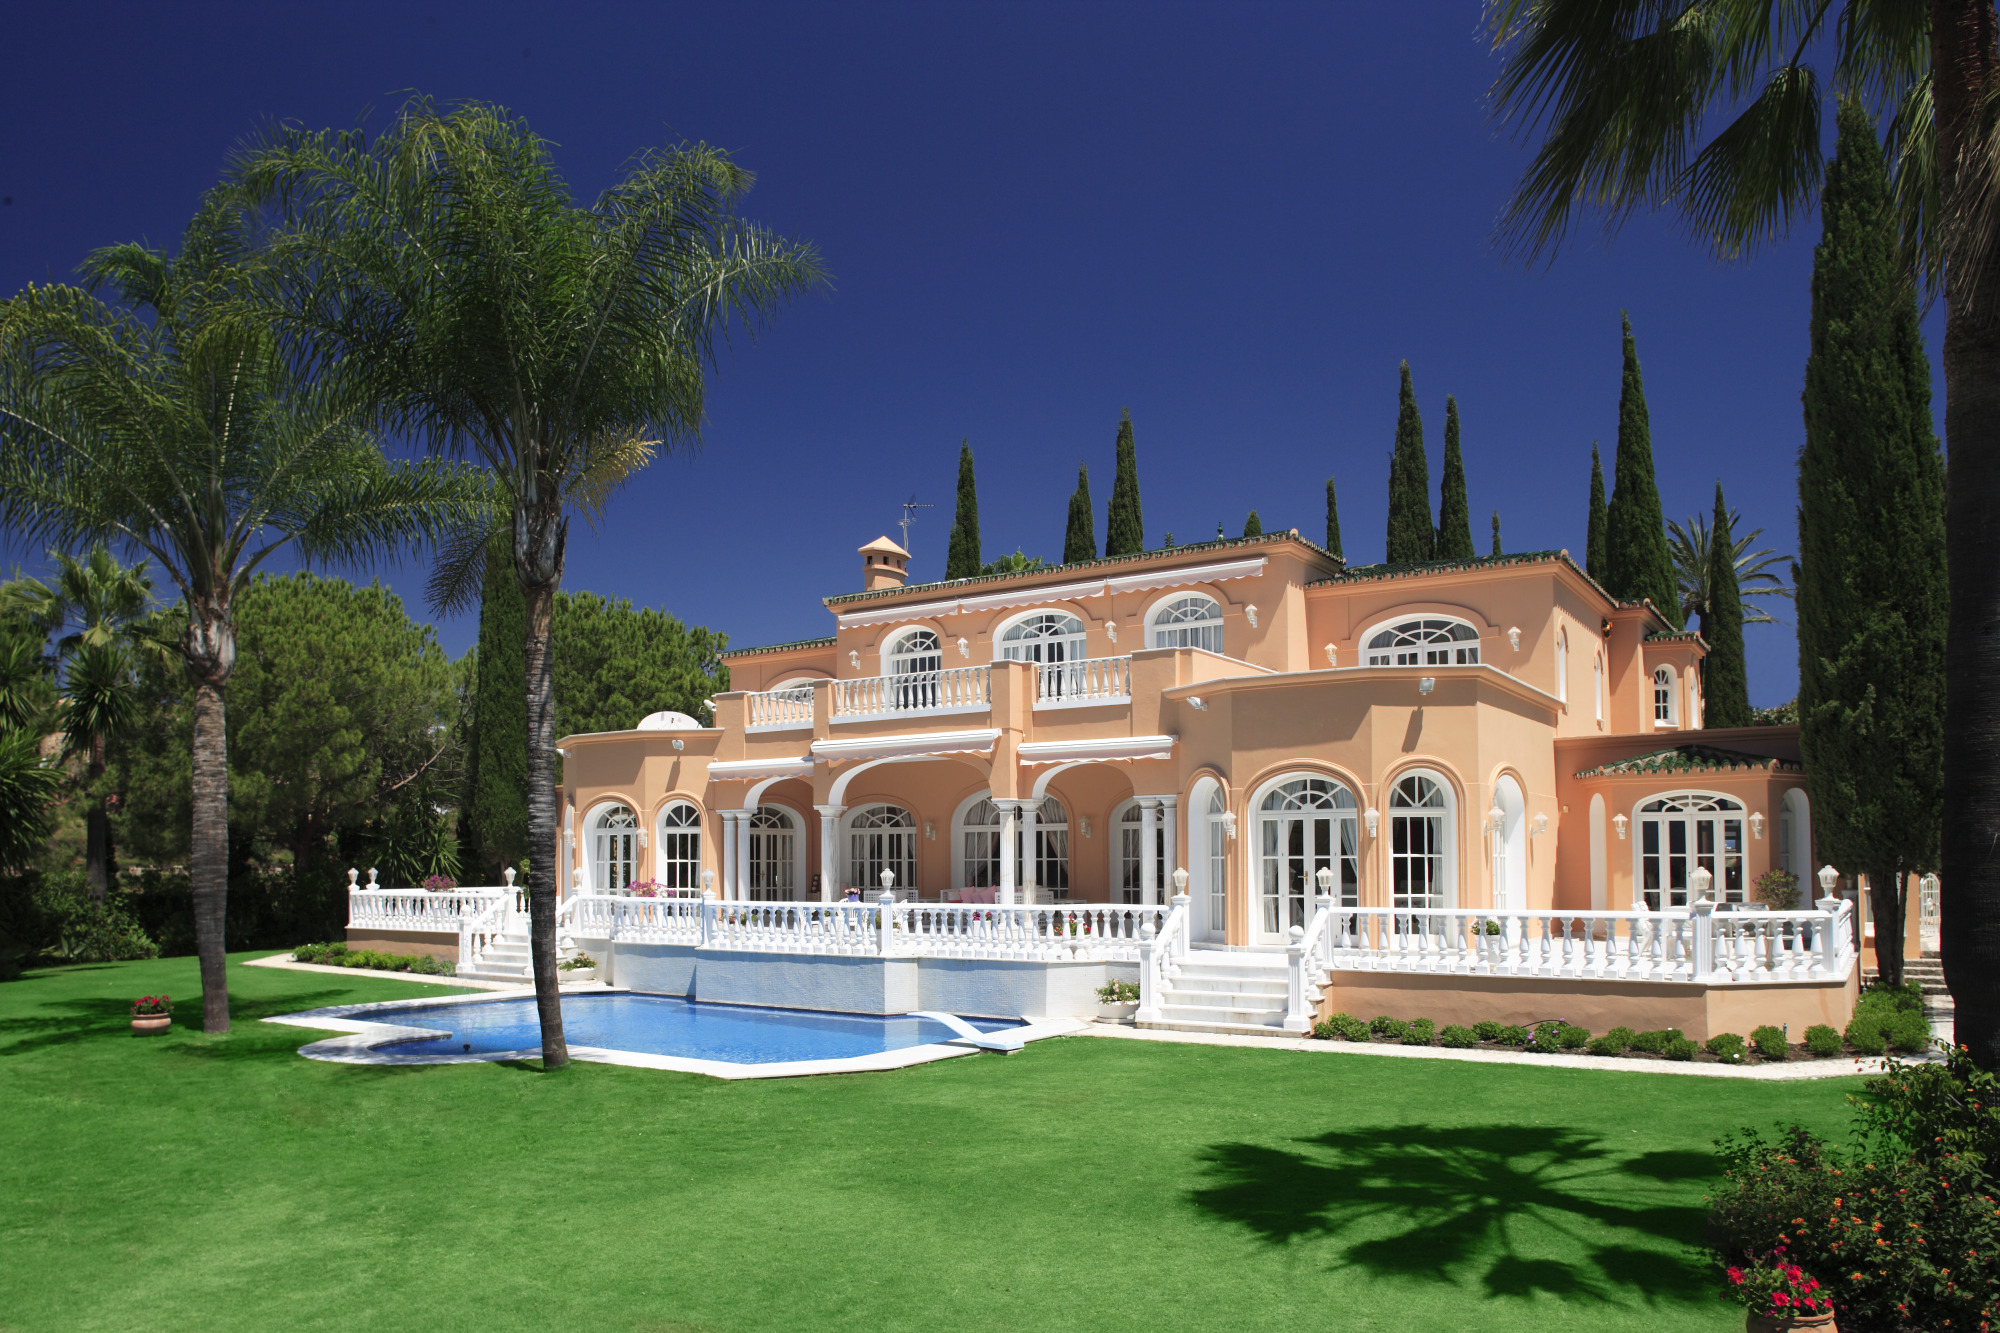 Prince S Old Villa In Spain Remains Unsold Bloomberg